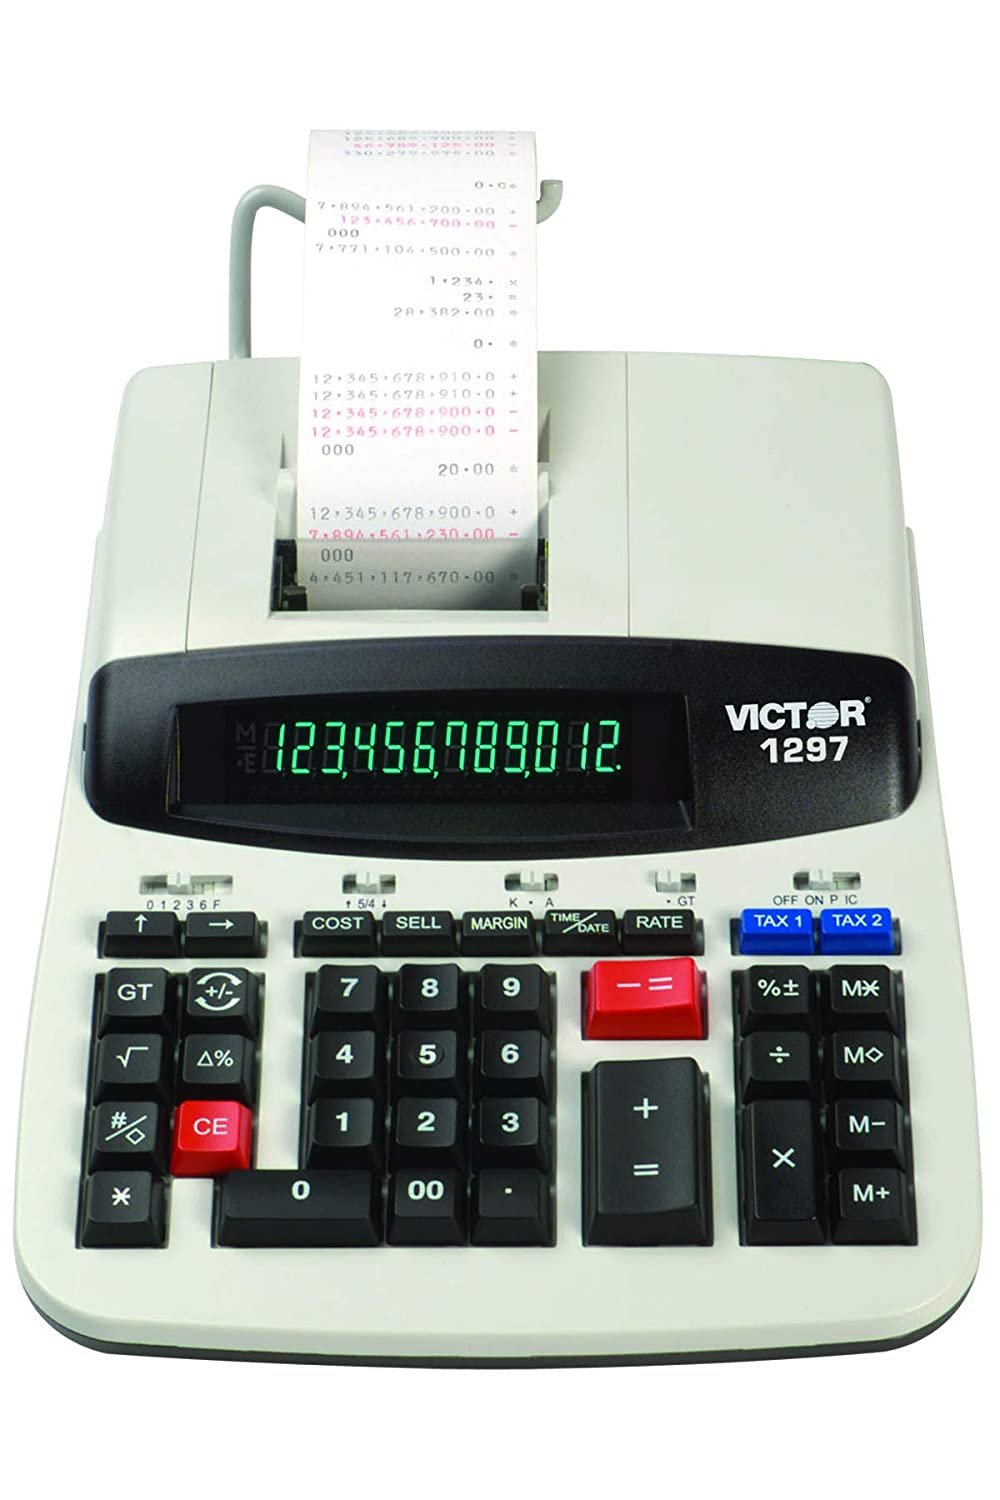 Victor 1297 12-Digit Commercial Printing Calculator, Adding Machine  Calculator with Tape, Great for Business, Home, and Office Use